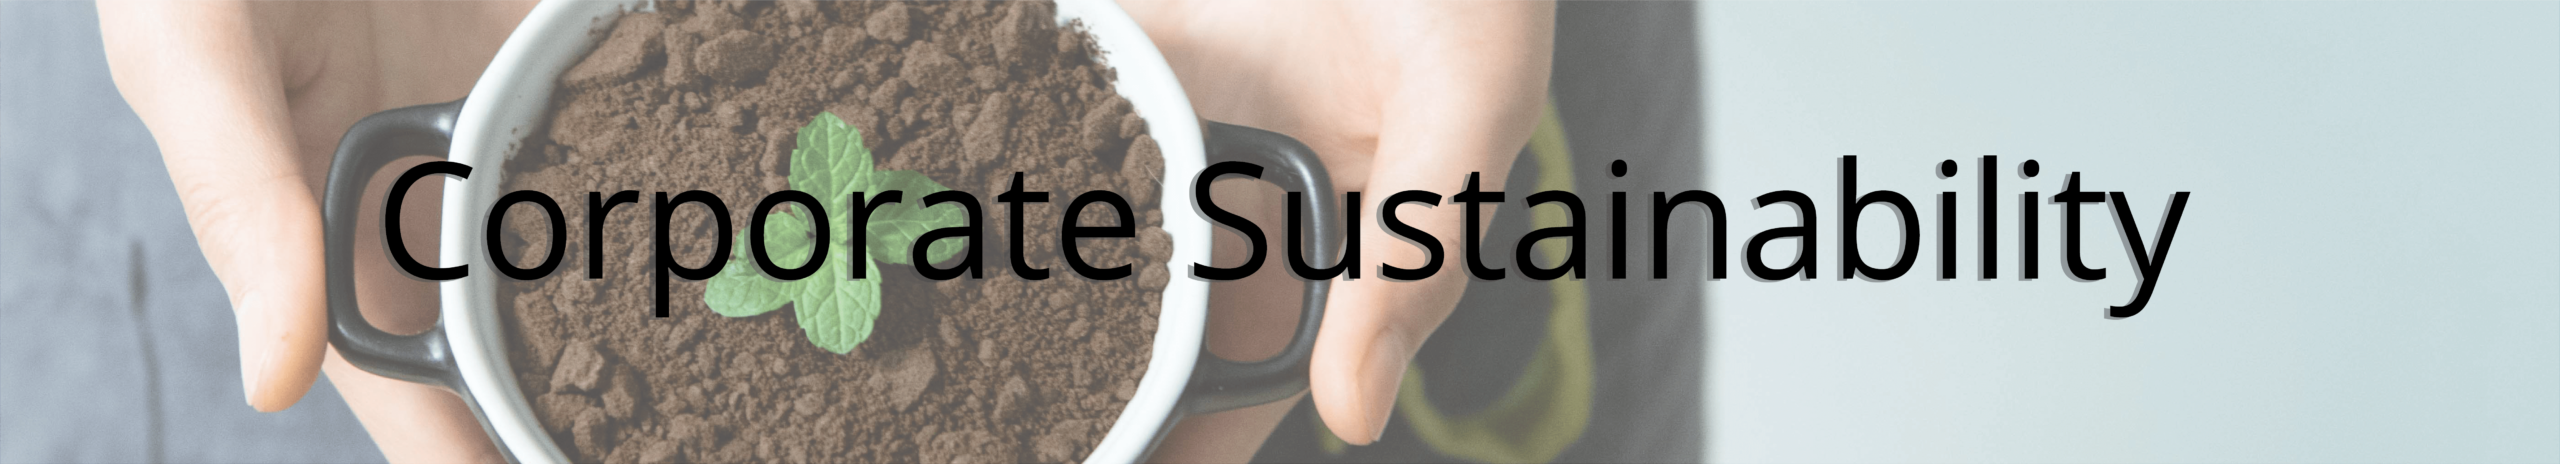 Corporate Sustainability Header - A person holding a plant with the words corporate sustainability overlaid on top.